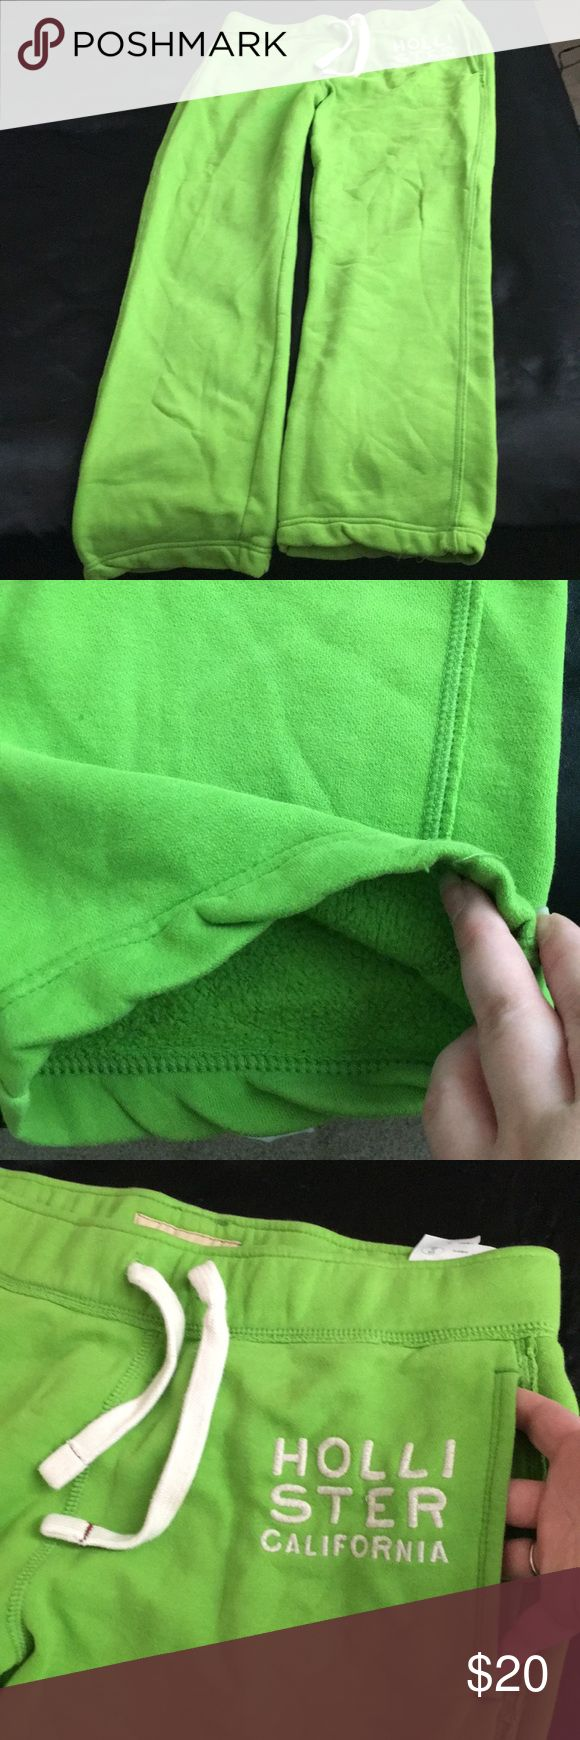 Men's Medium Hollister Lime Green Sweatpants For sale I have a pair of men's sweatpants from Hollister. These have front pockets and a tie waist. Hollister Pants Sweatpants & Joggers